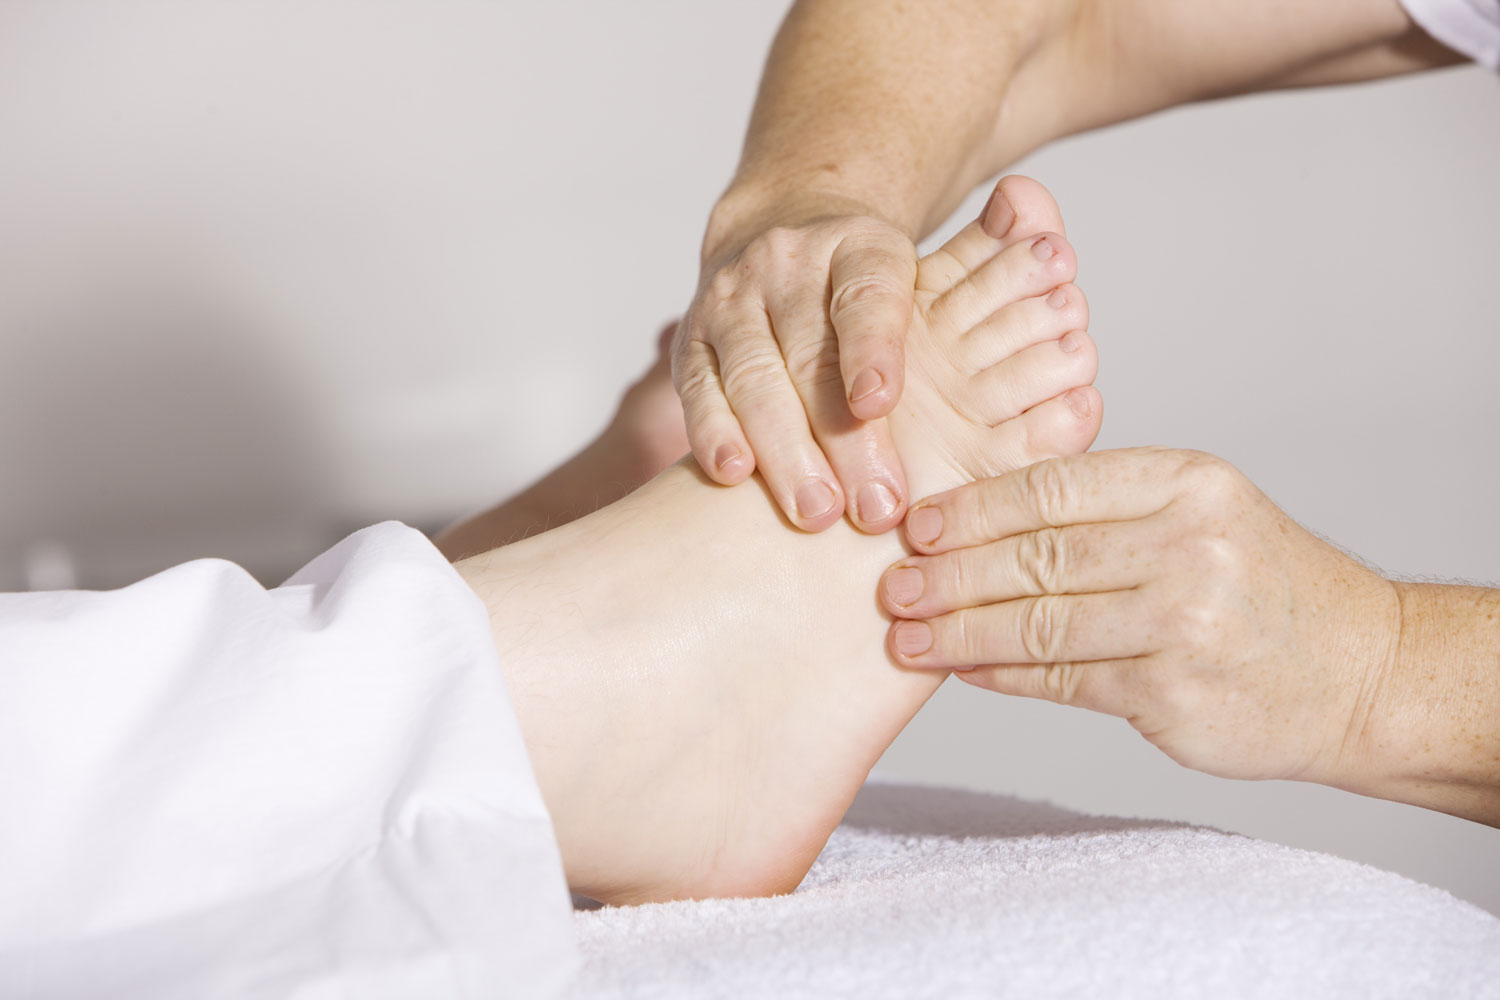 Kilbarchan Chiropody increases customer retention by 80%